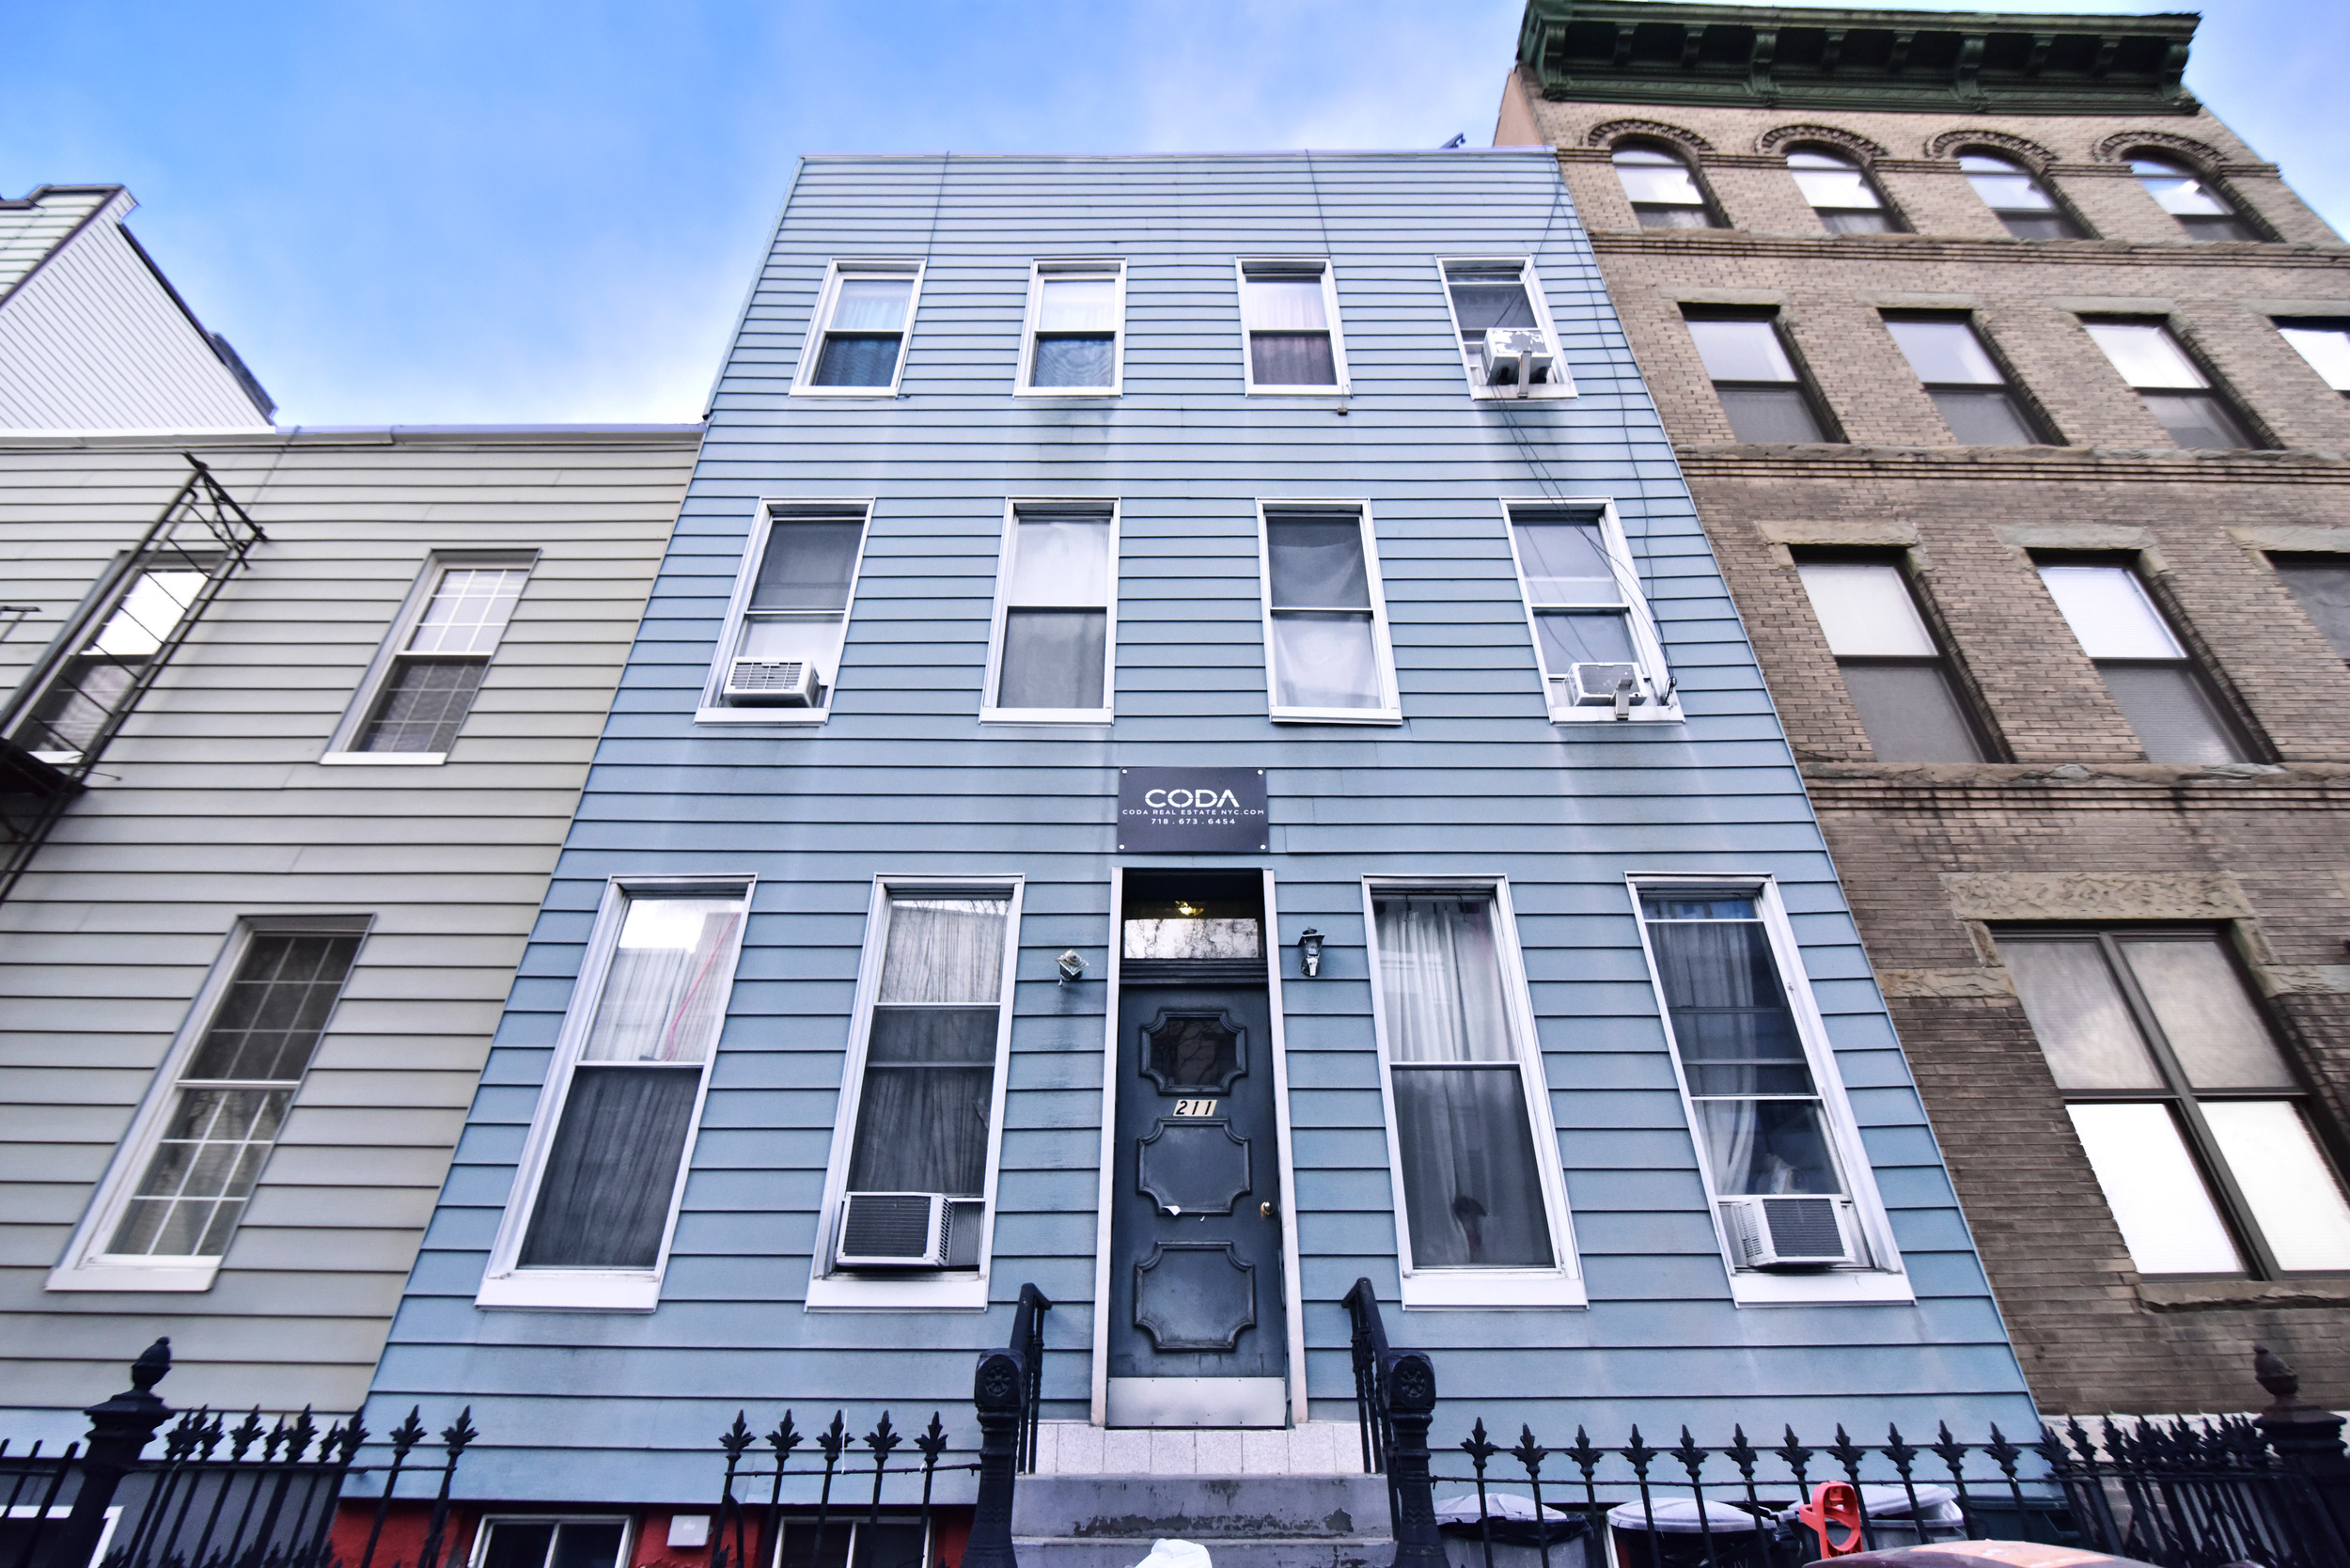 Sold | Greenpoint | 6 Fam | 1,300,000